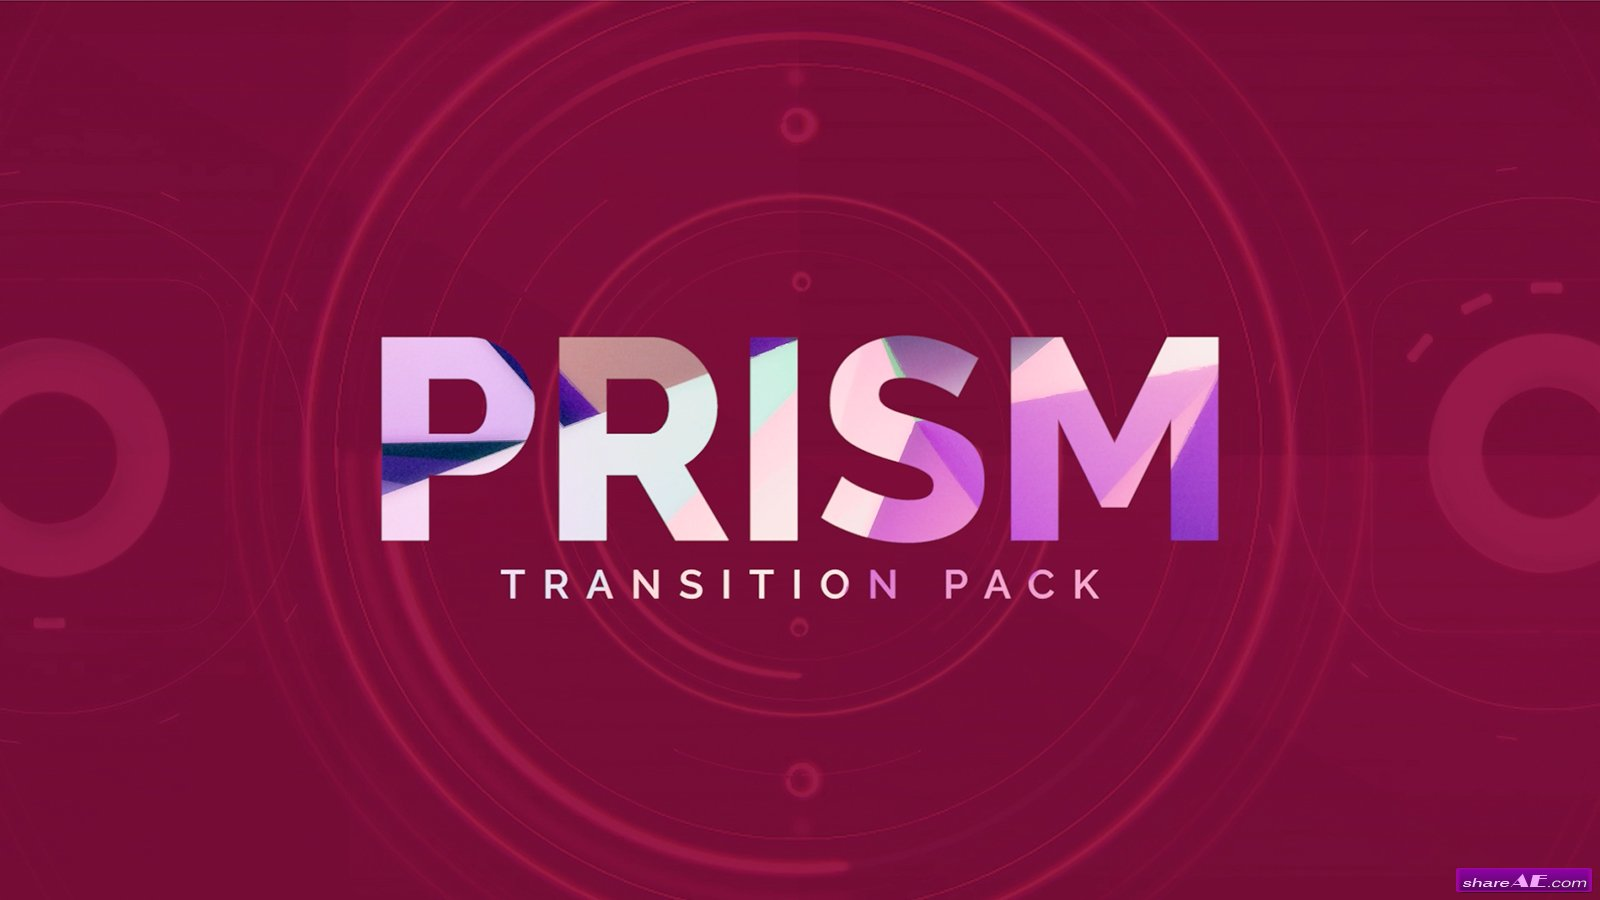 Prism - 200 High-Energy Transitions - After Effects Template (RocketStock)